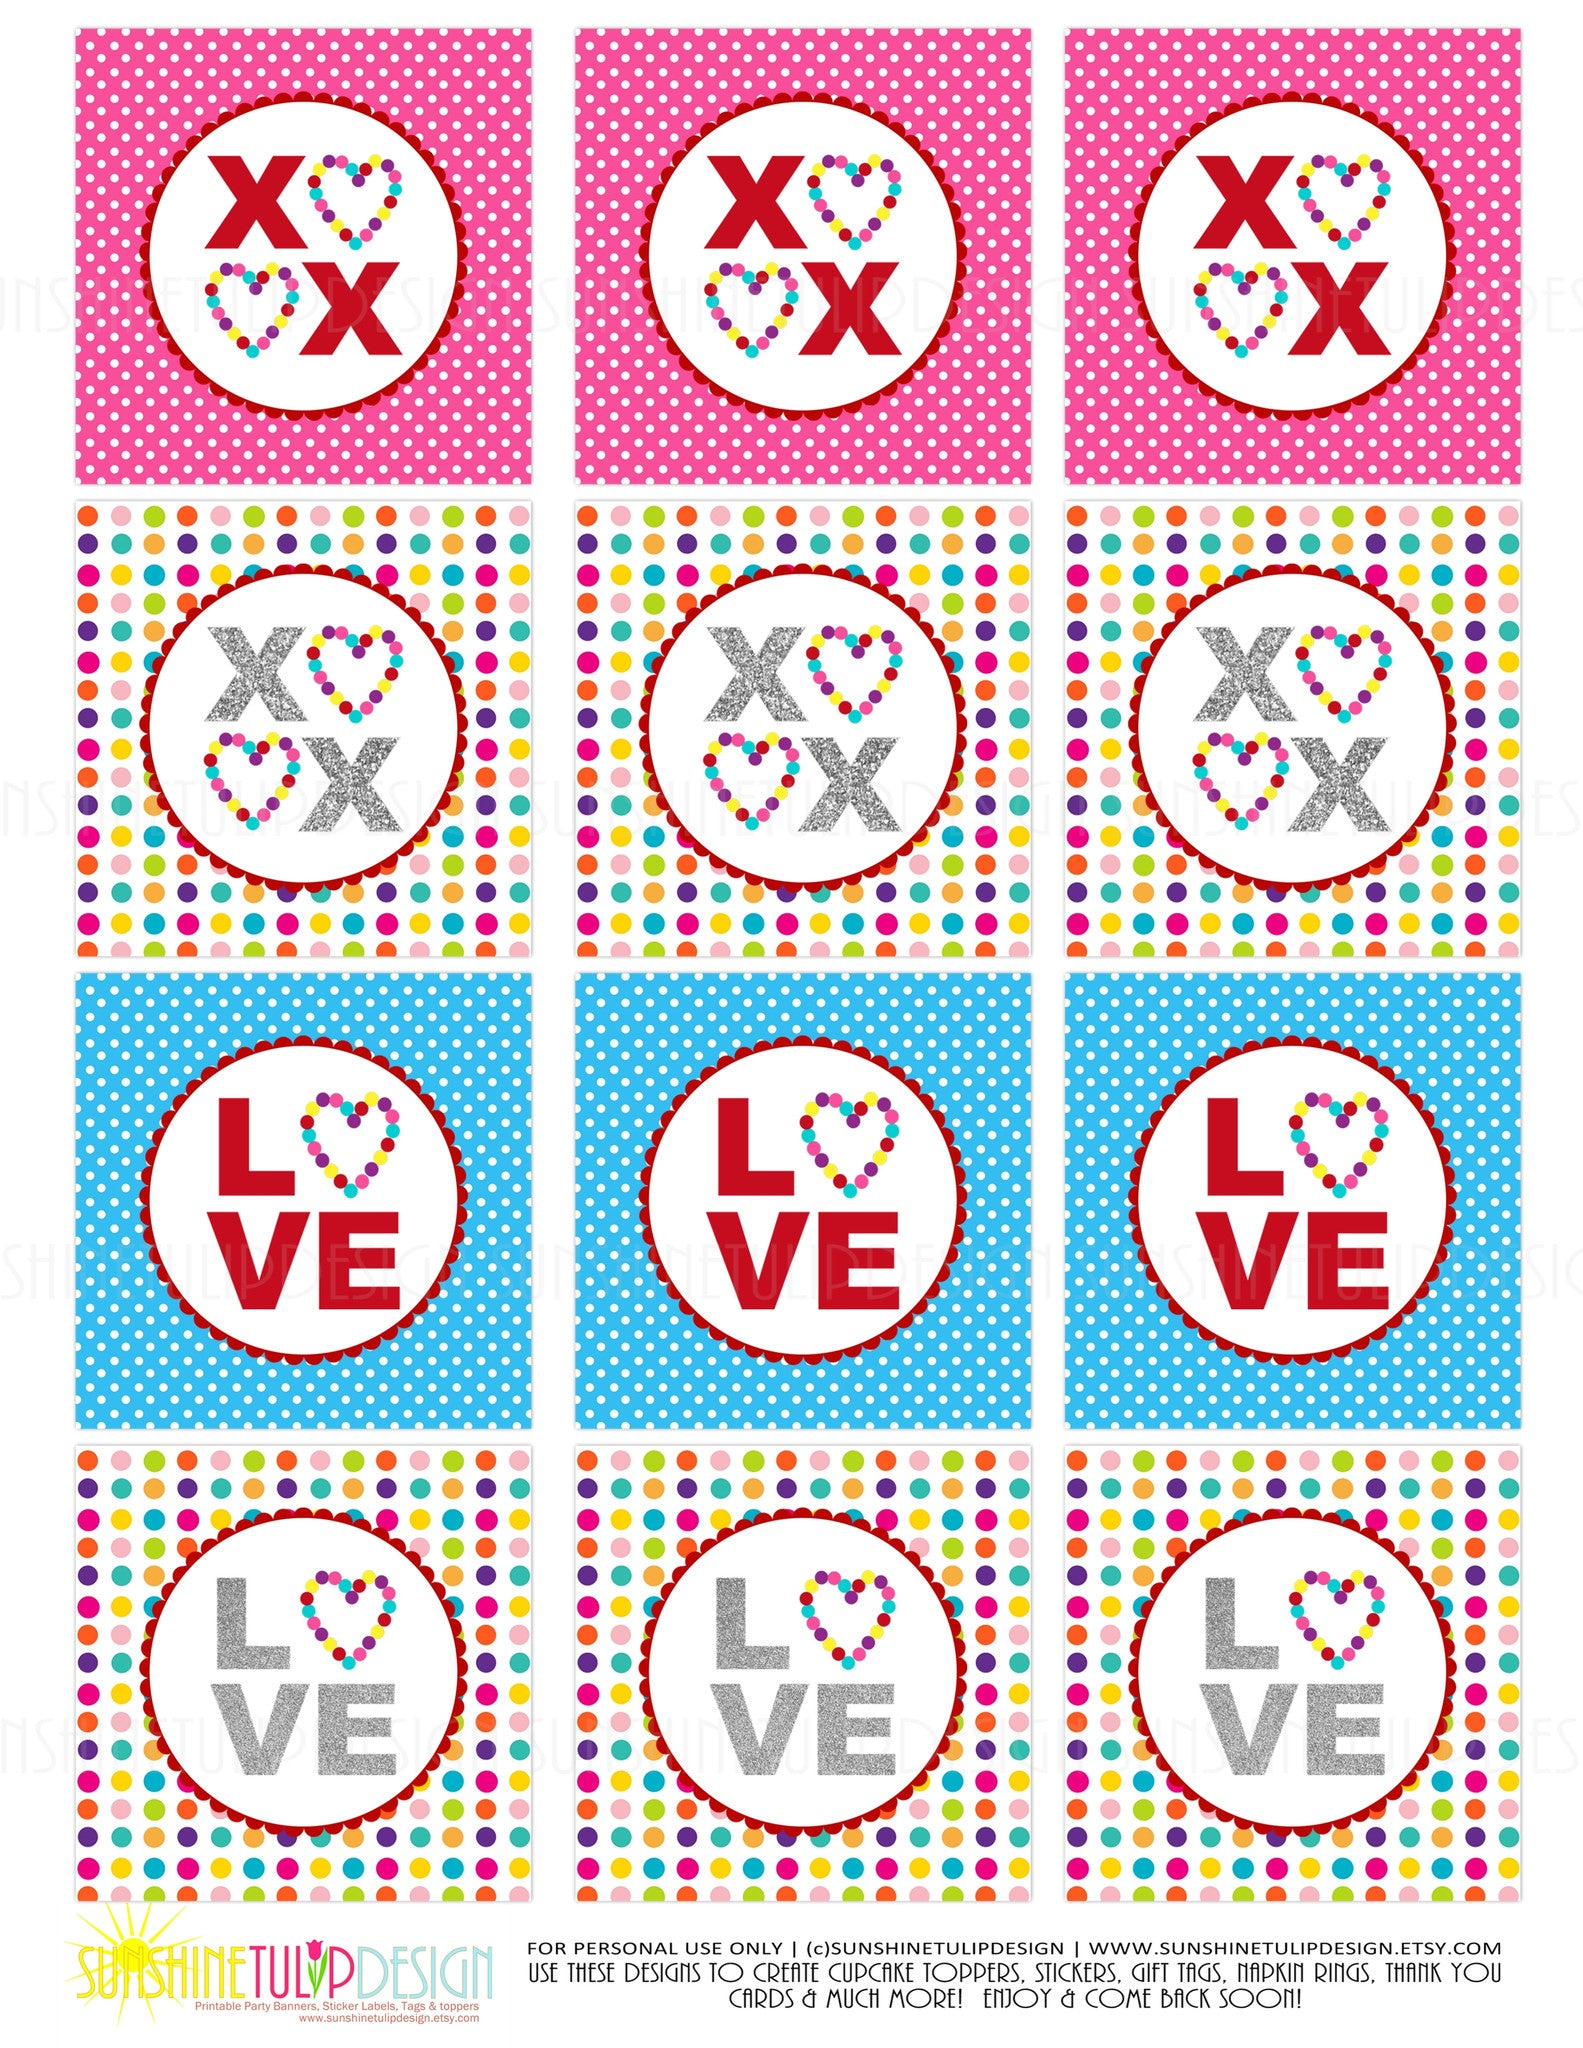 graphic about Valentines Gift Tags Printable known as Printable Valentines Working day XOXO Present Tags Cupcake Toppers, Printable Appreciate Present Tags Cupcake Toppers by way of SUNSHINETULIPDESIGN